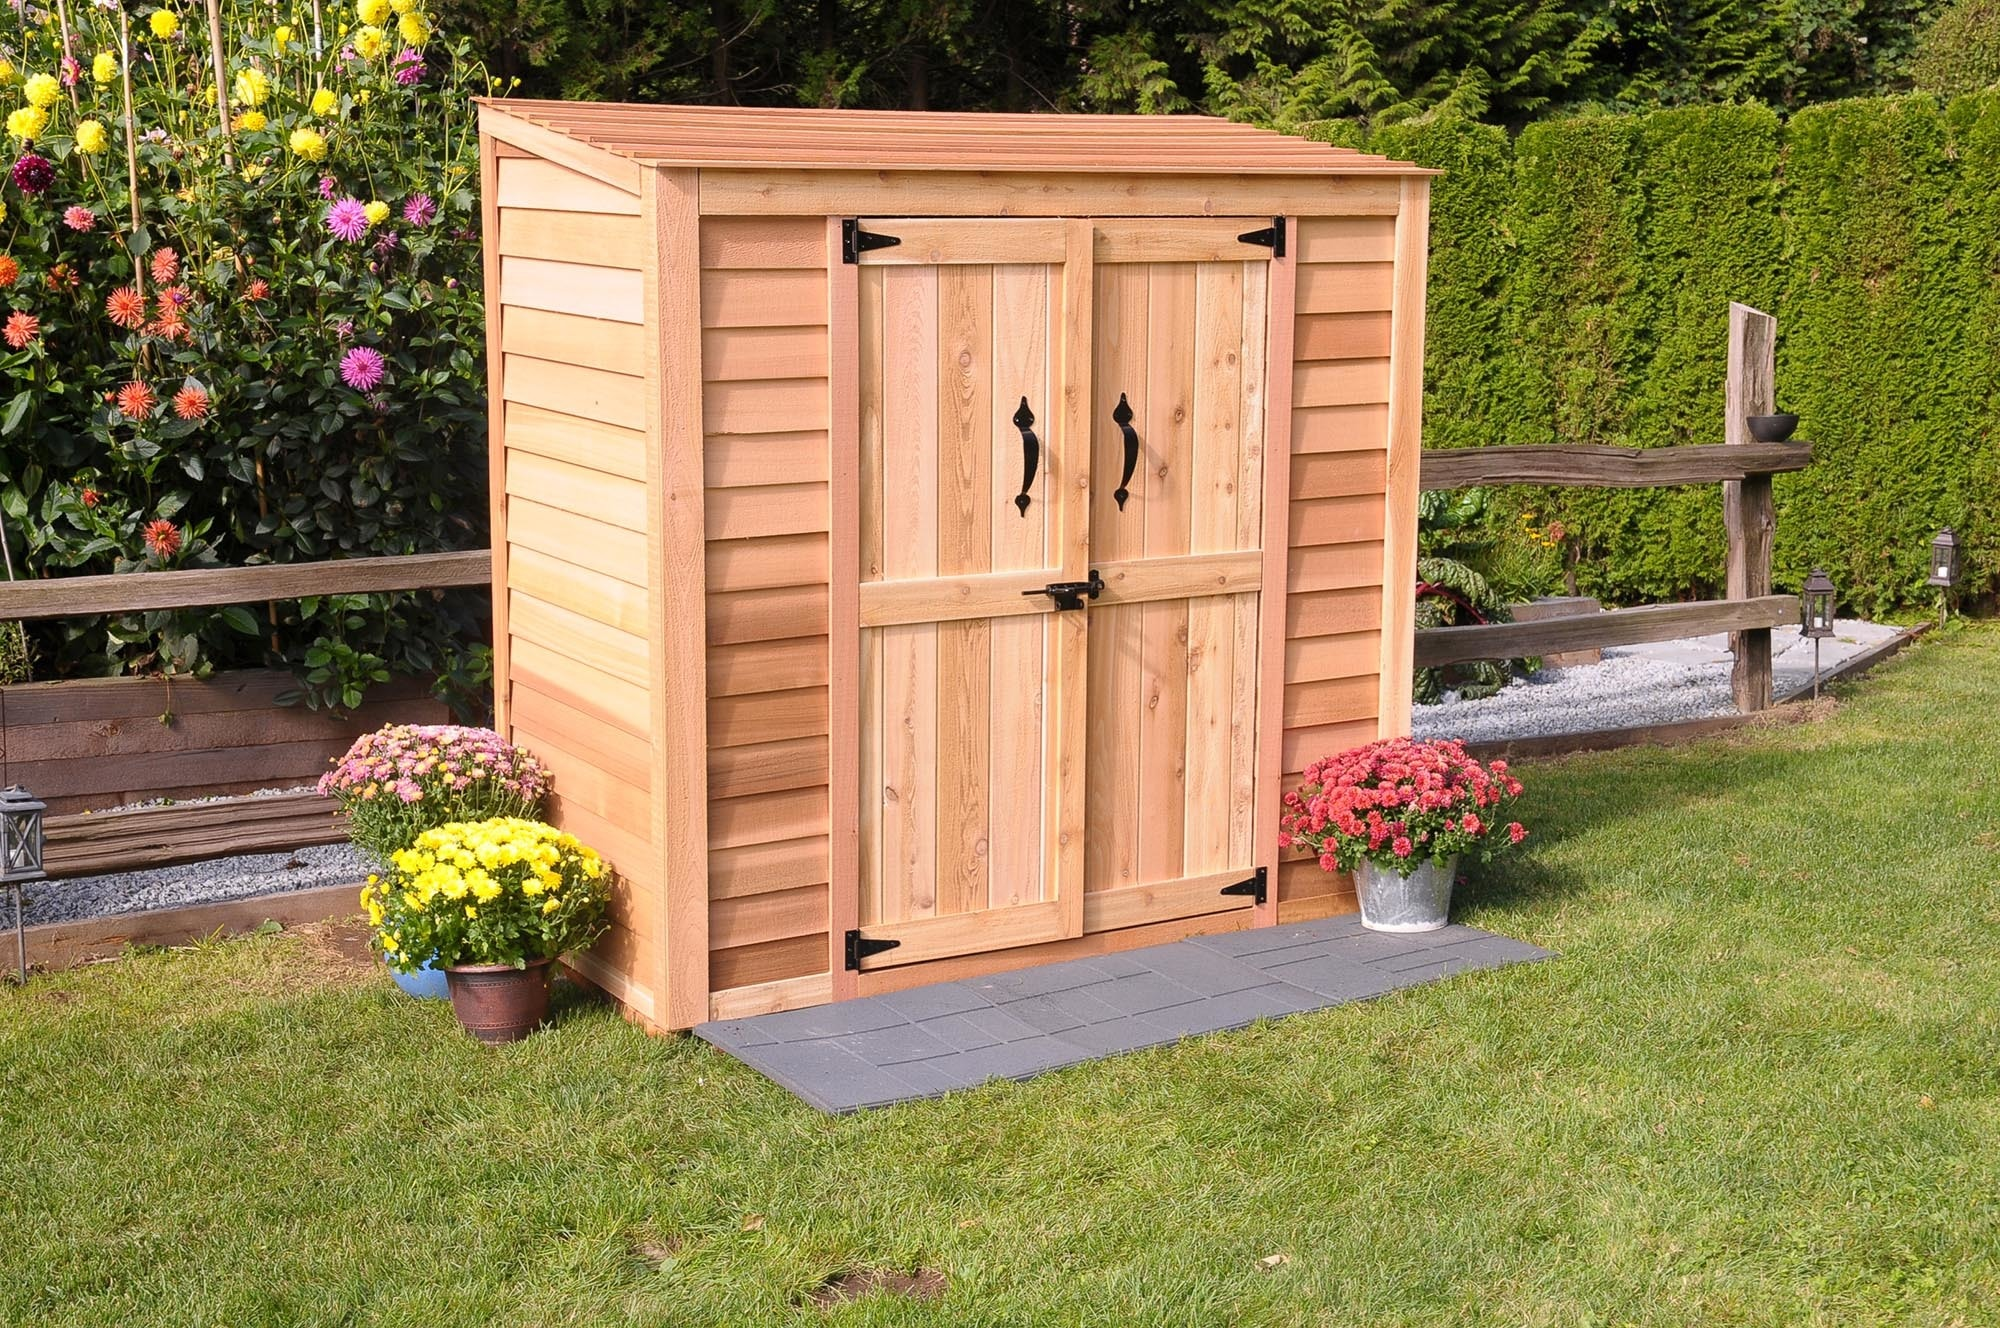 Hewetson Storage Sheds Compact Series X Patio Wooden